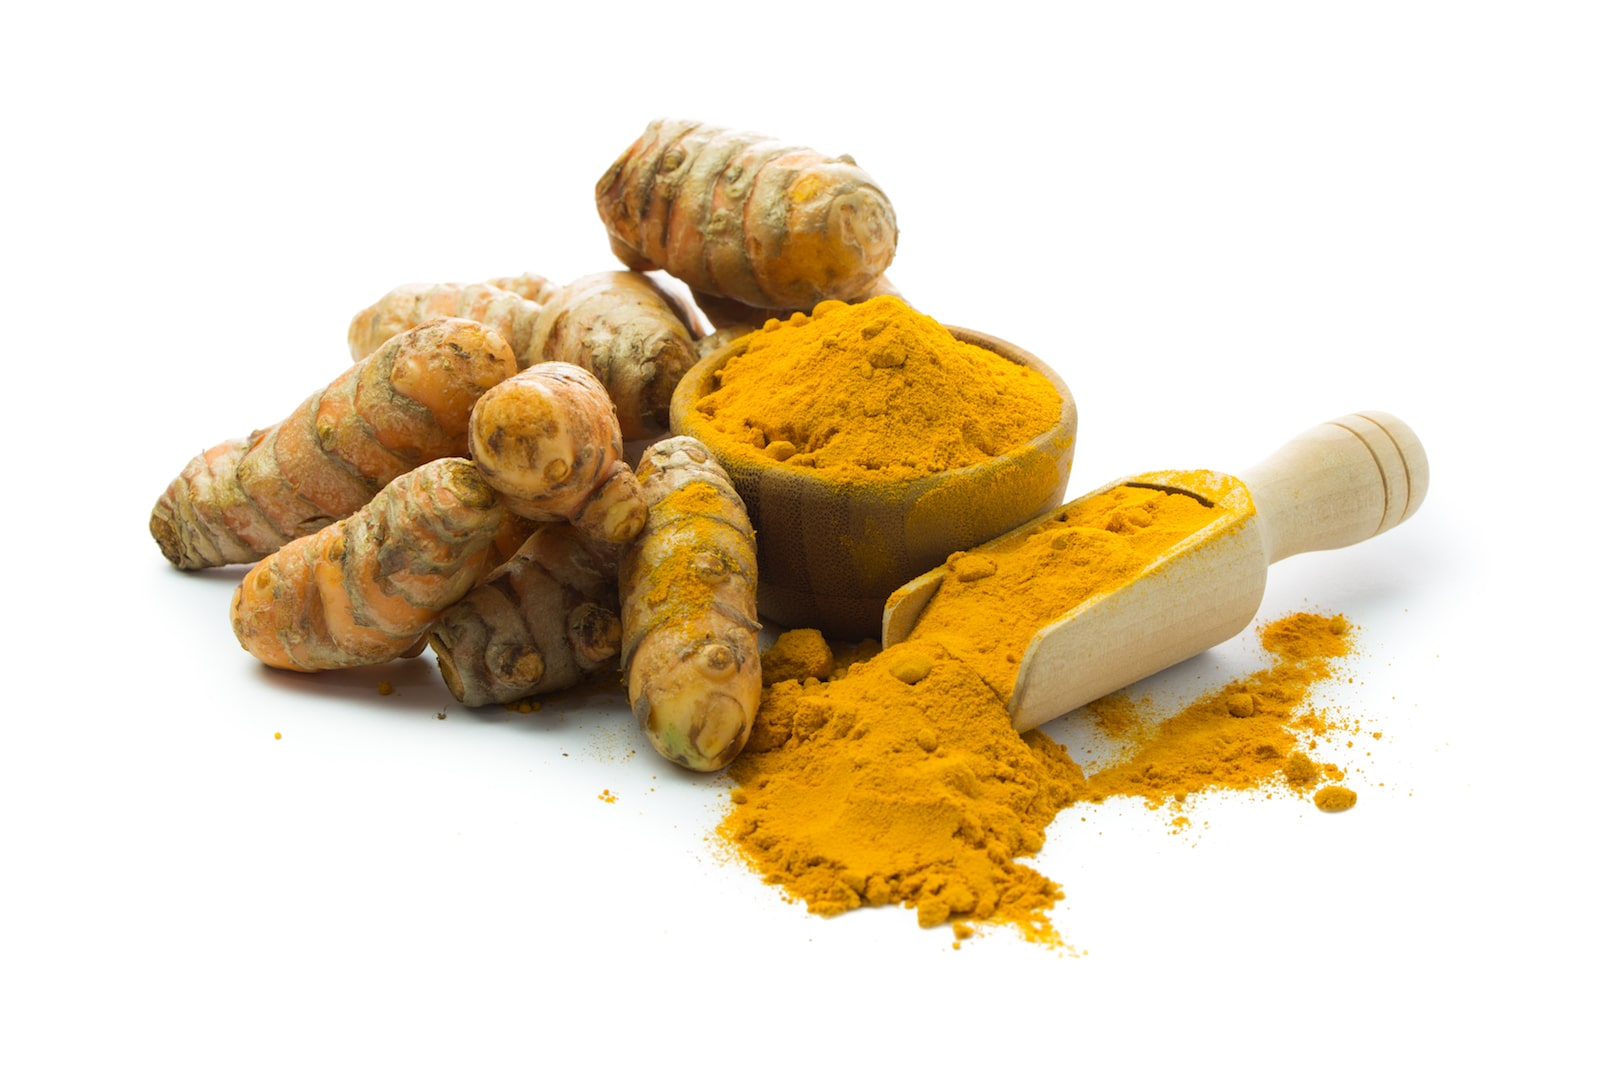 Turmeric is Superior to Chemical Mouthwash in Improving oral Health